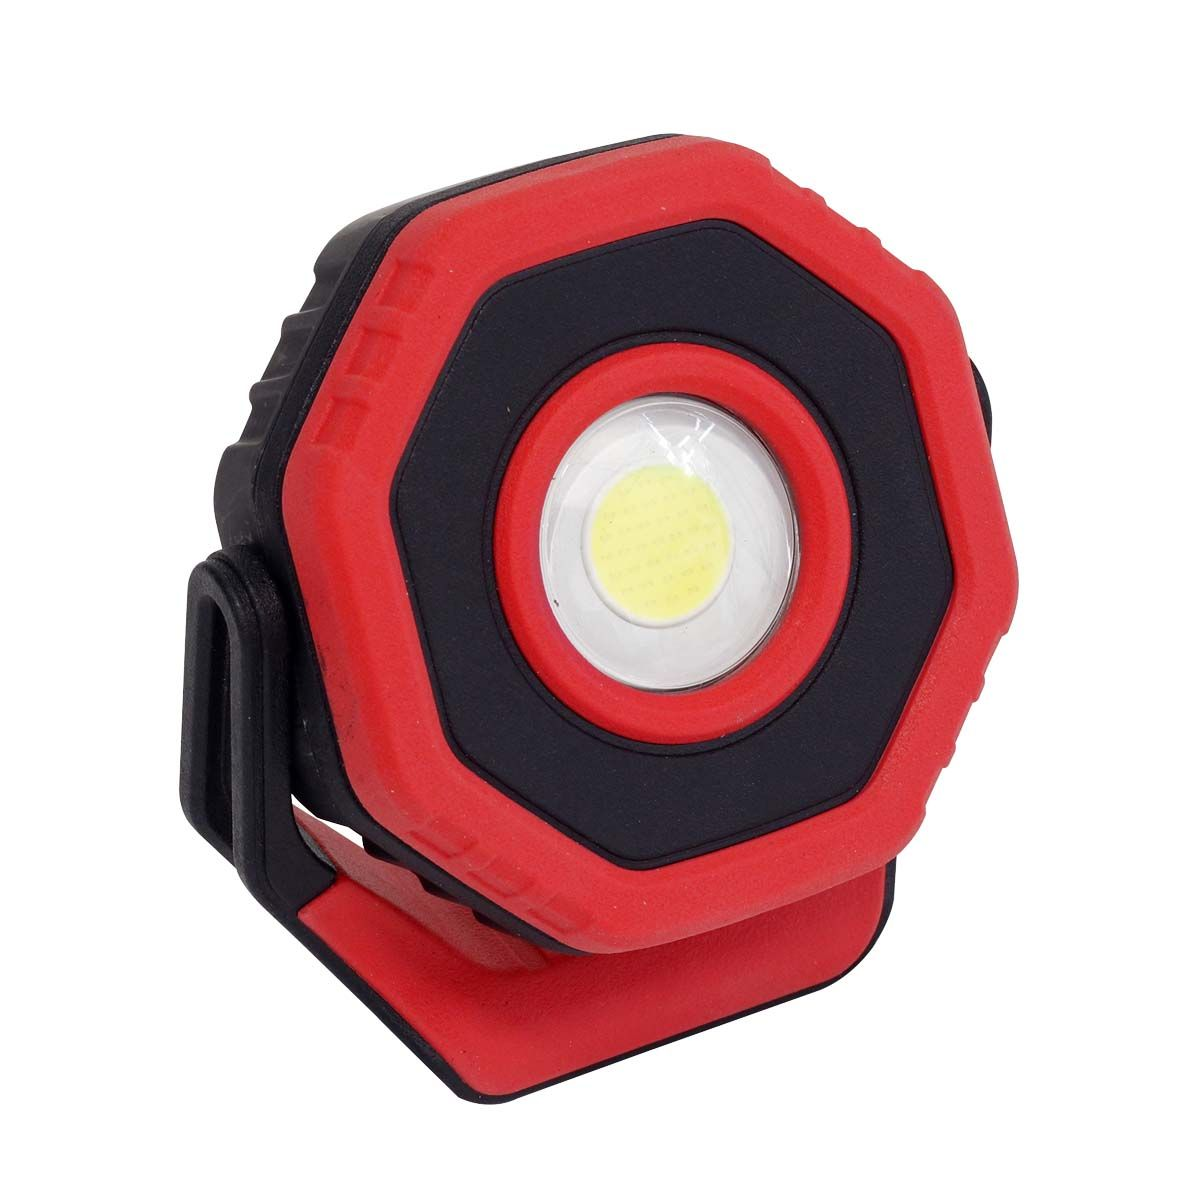 Sealey Rechargeable Pocket Floodlight with Magnet 360° 7W COB LED - Red